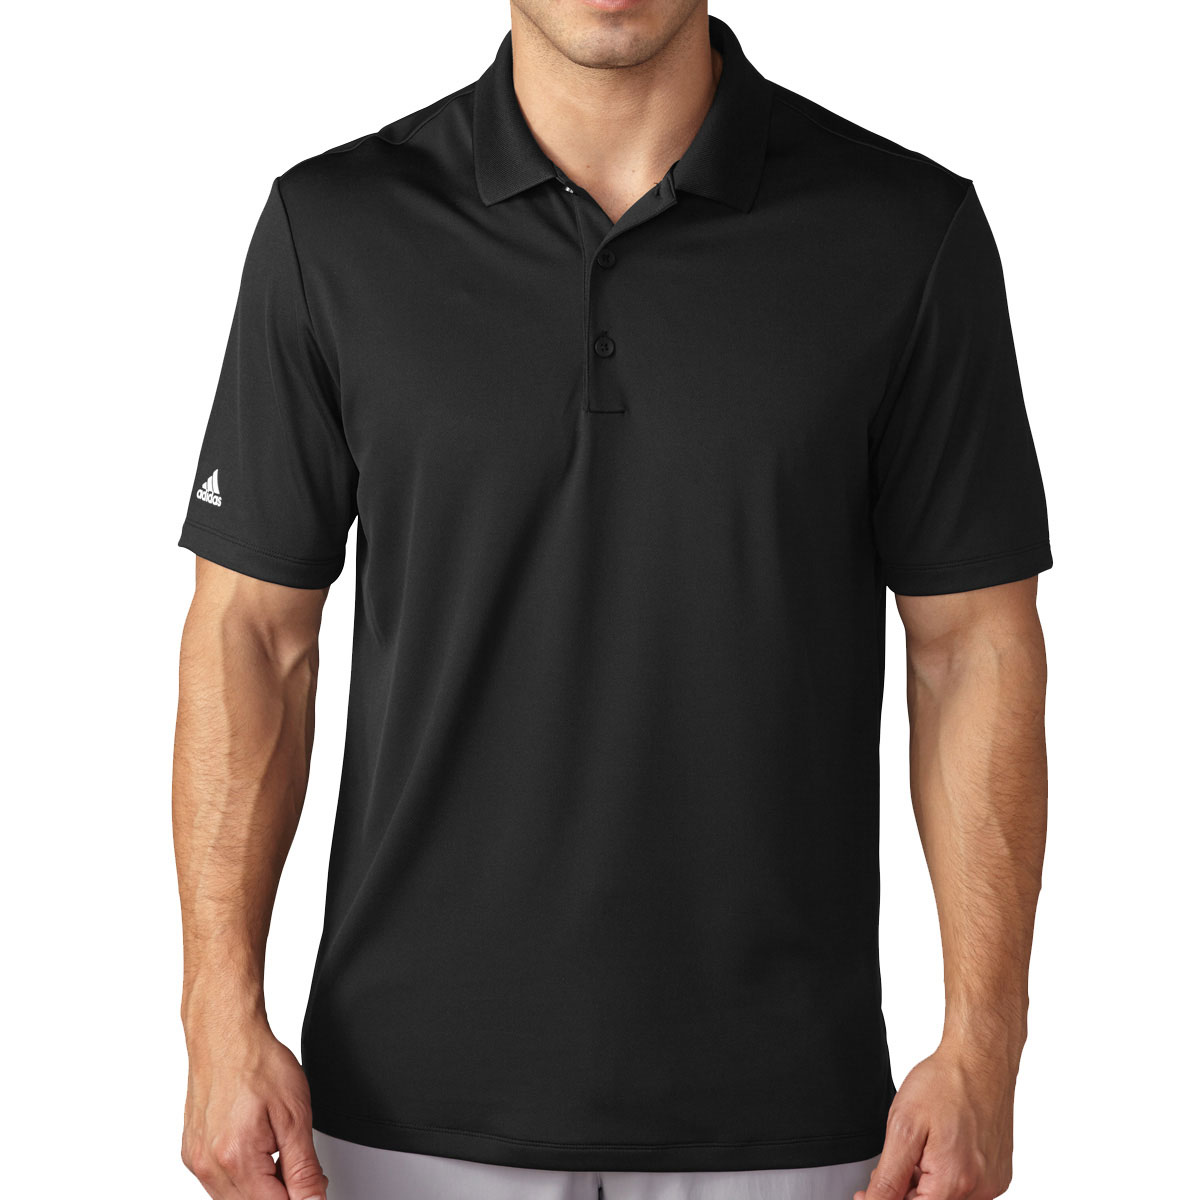 Adidas golf 2017 mens lightweight performance polo shirt for Mens golf polo shirts